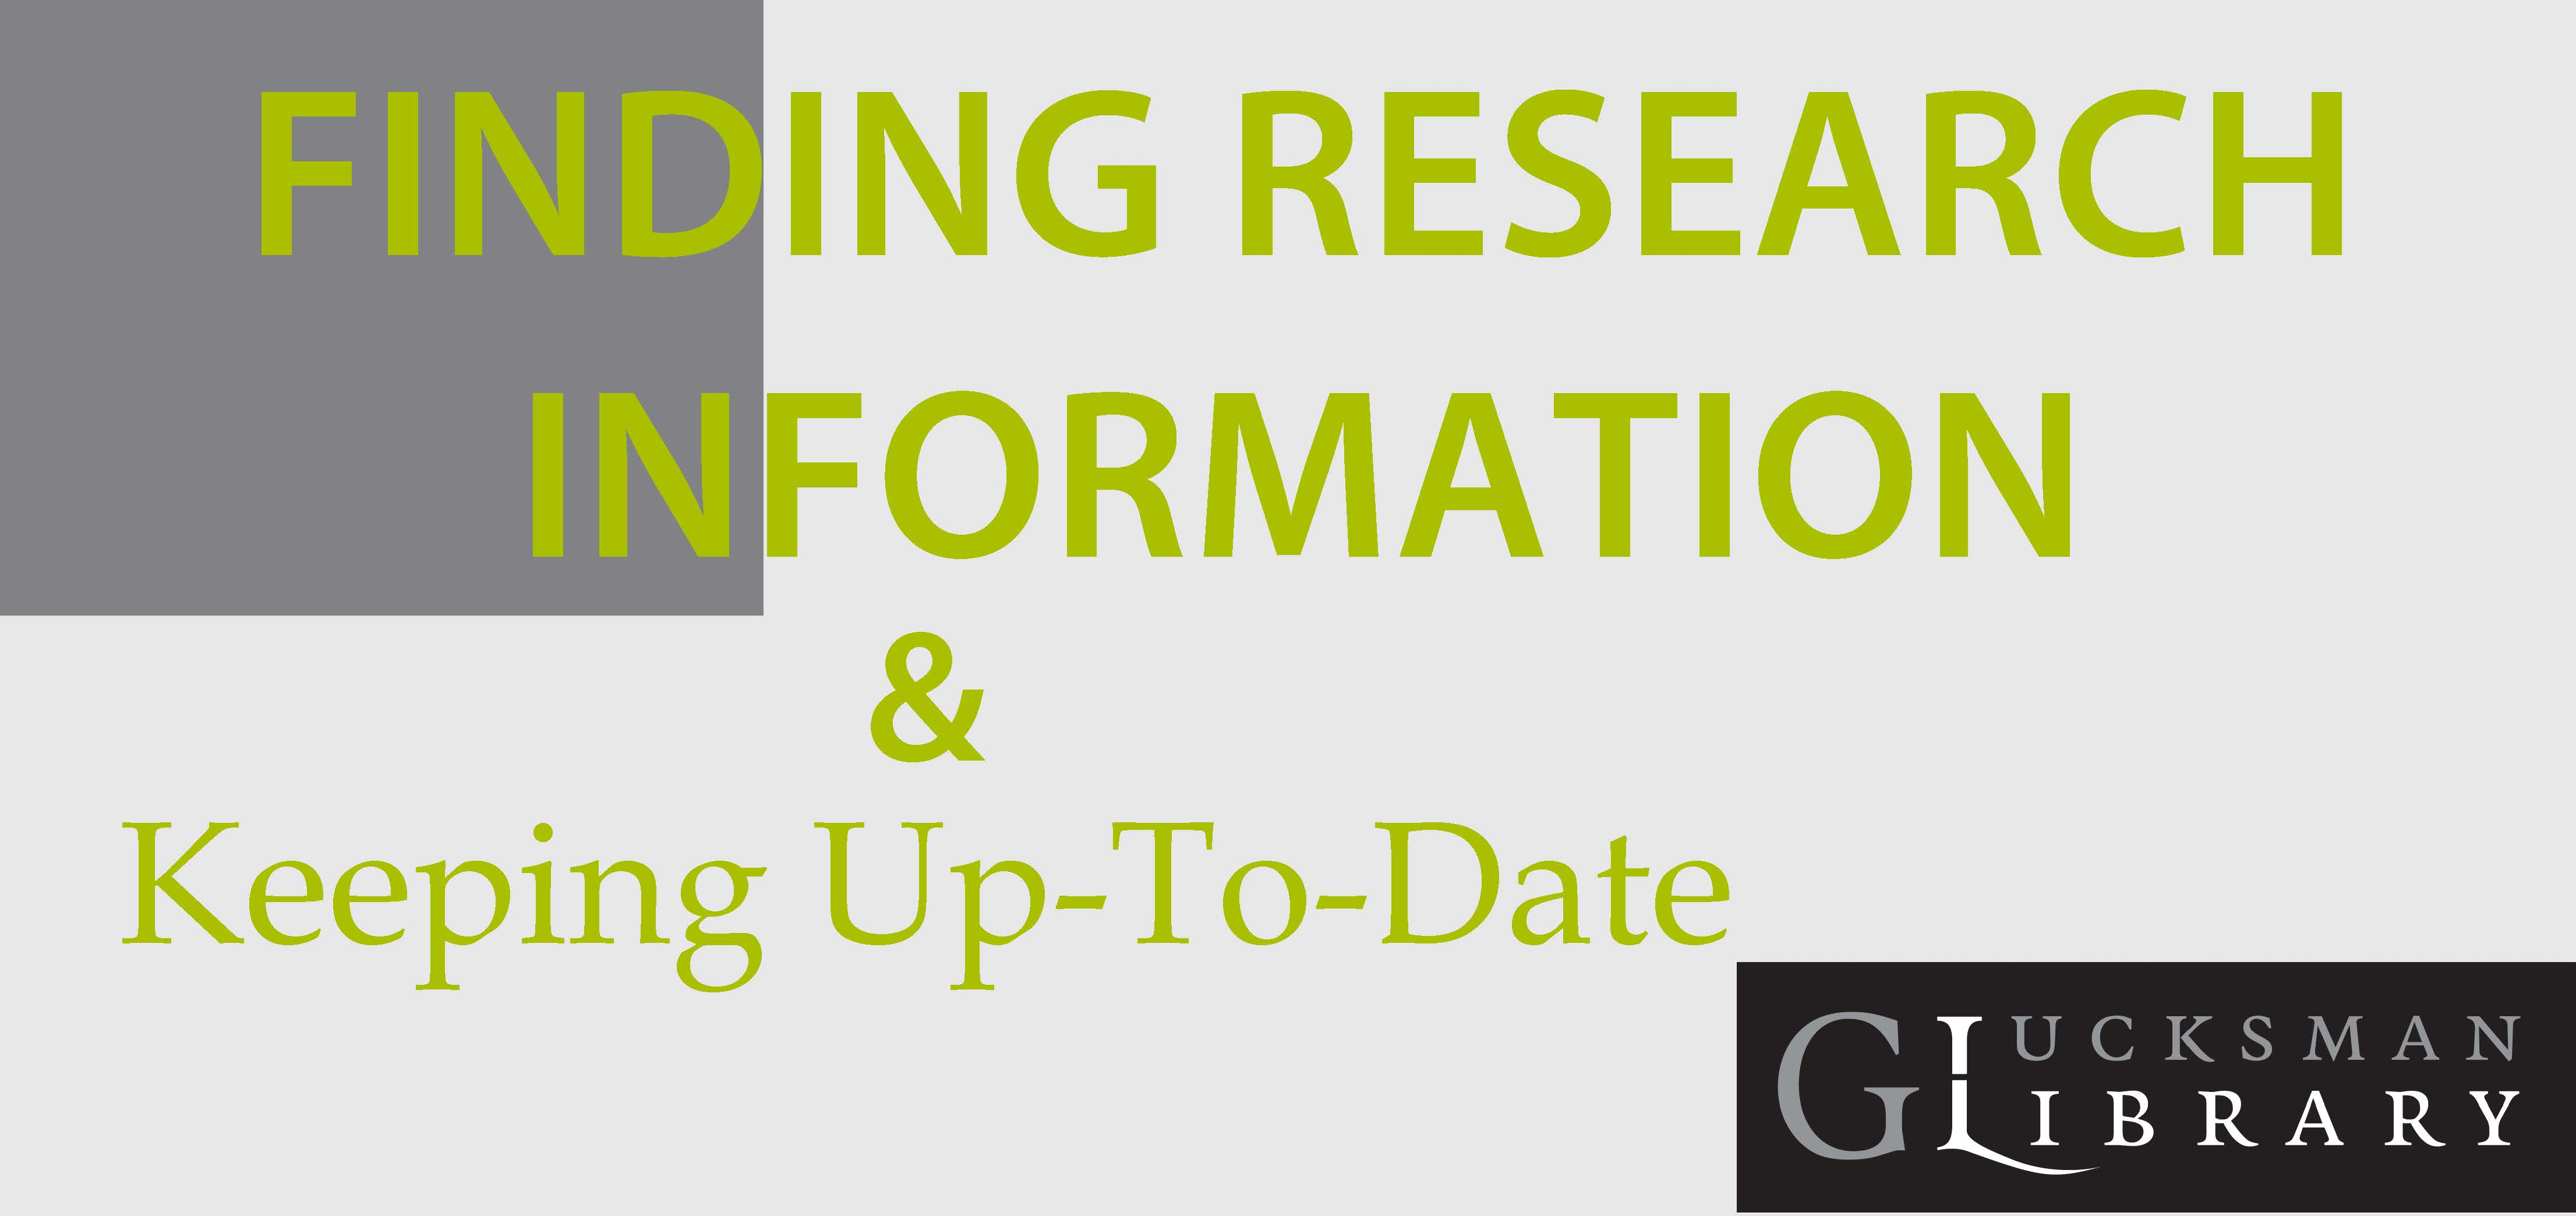 Finding Research Information & Keeping Up-To-Date